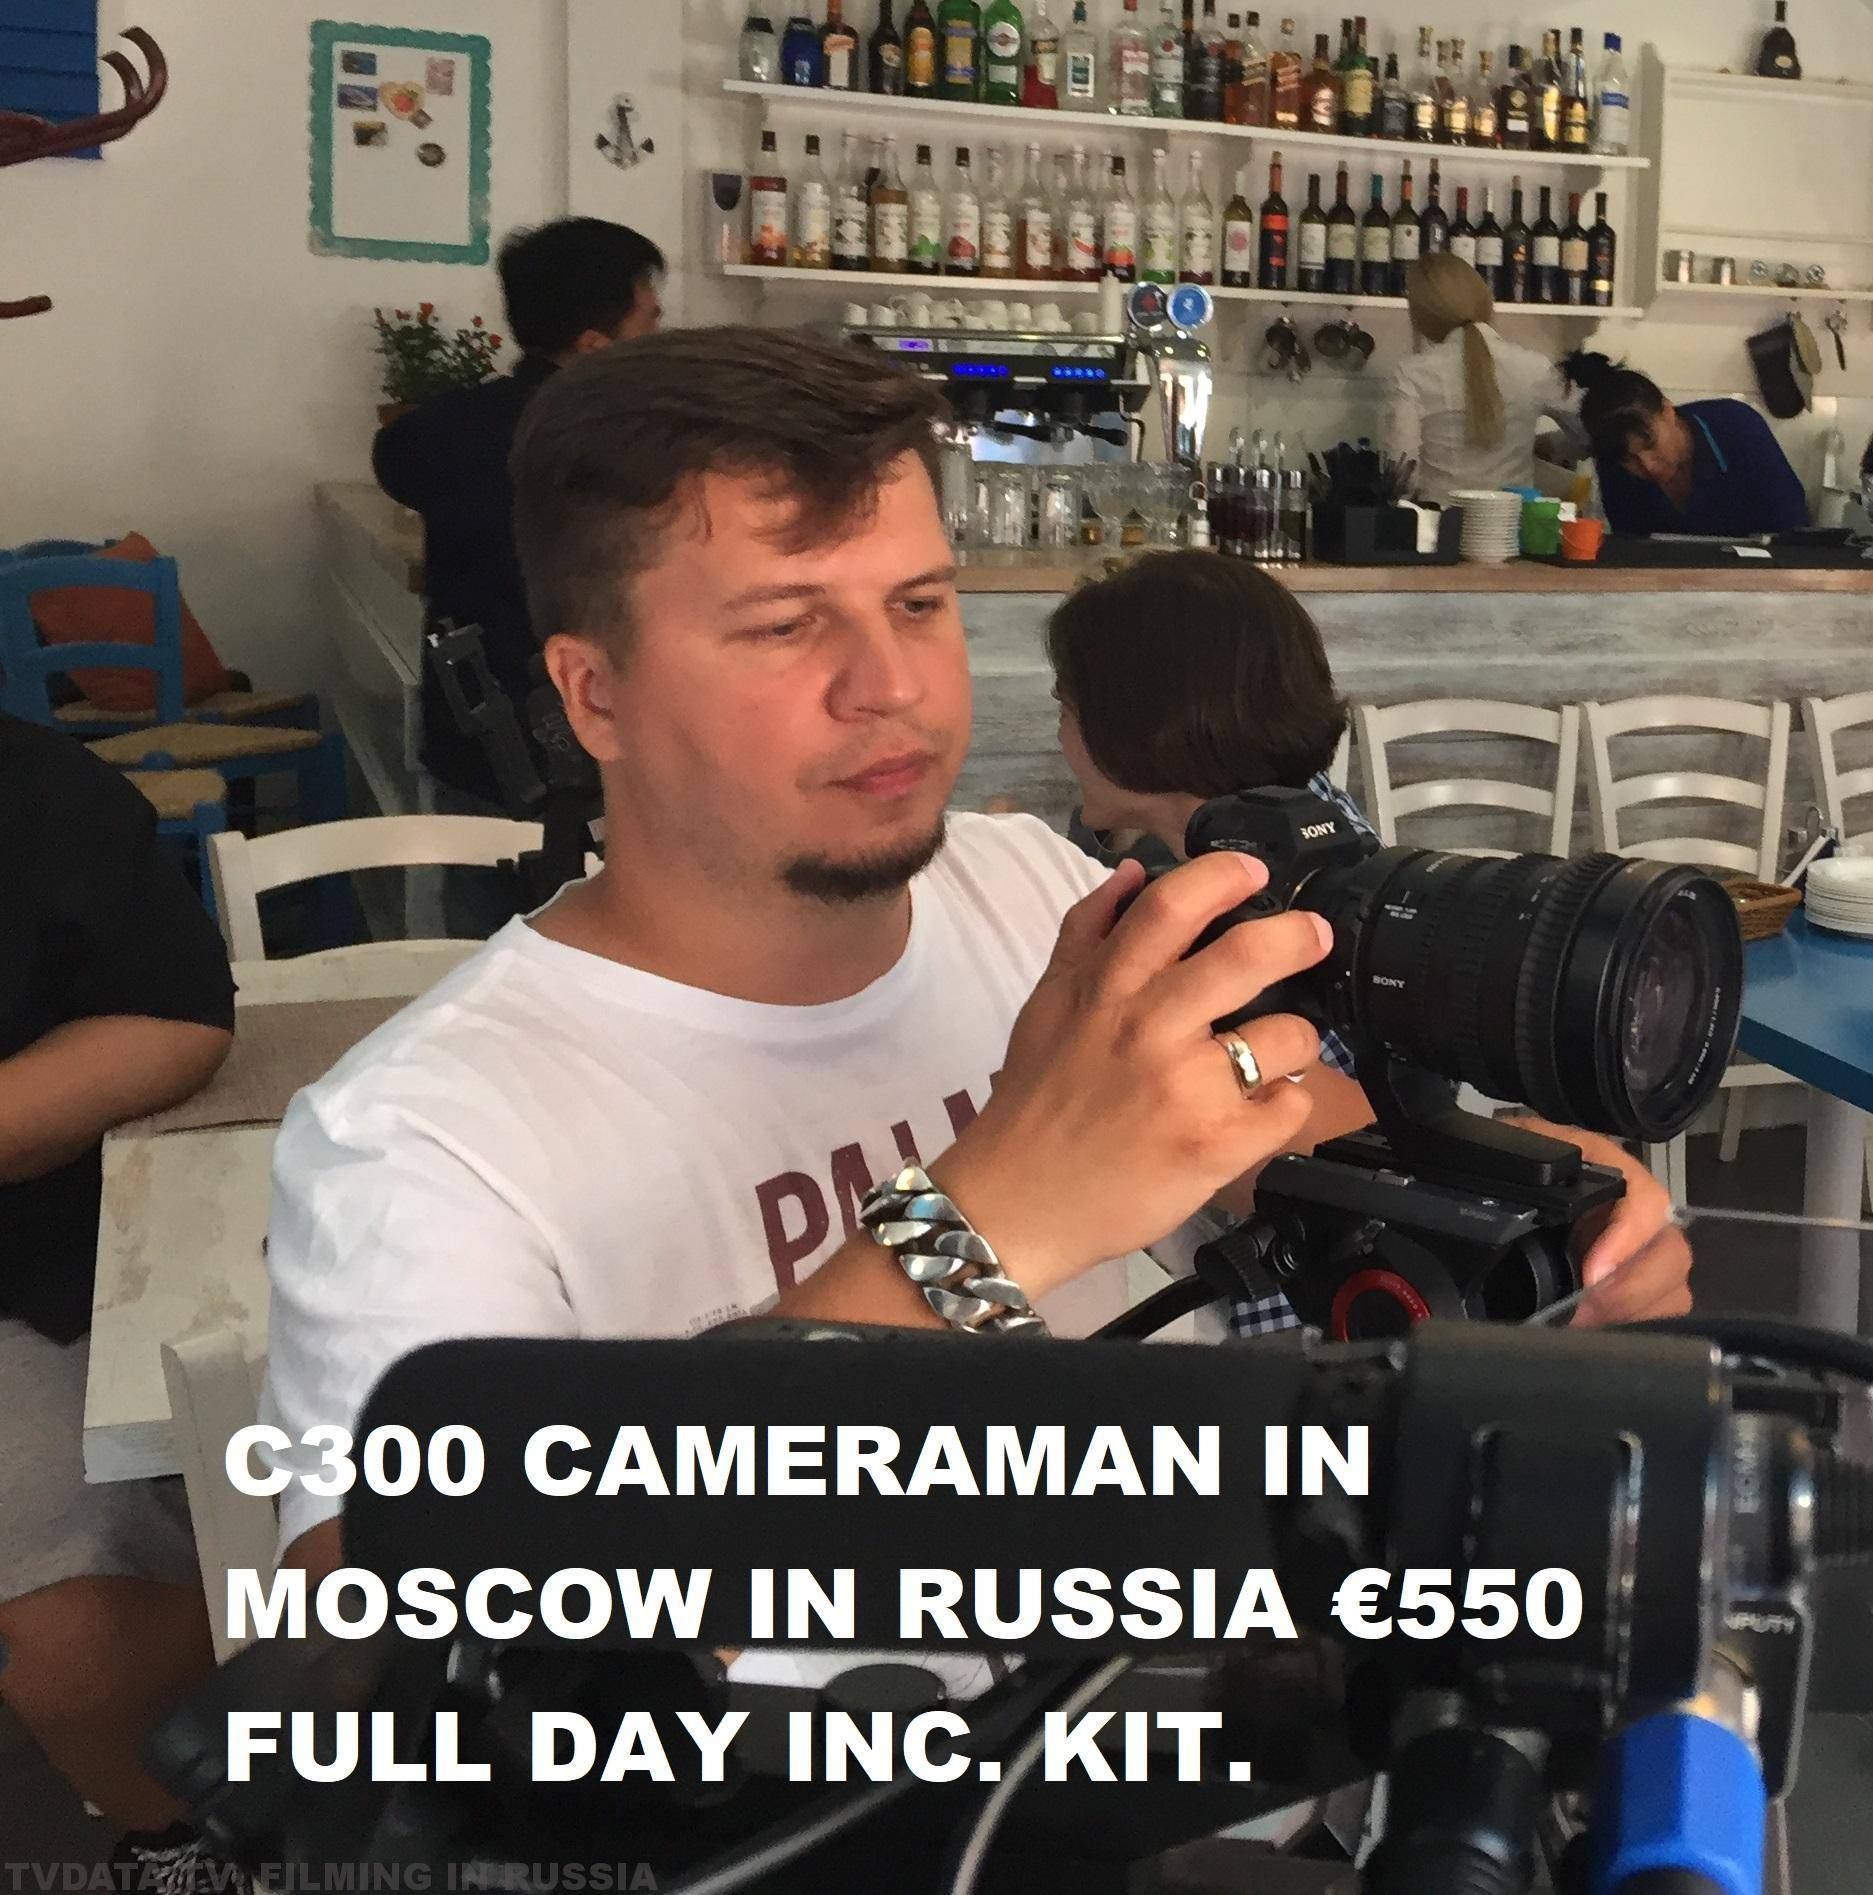 C300 CAMERAMAN IN MOSCOW IN RUSSIA €550 FULL DAY INC. KIT. CAMERAMAN@TVDATA.TV